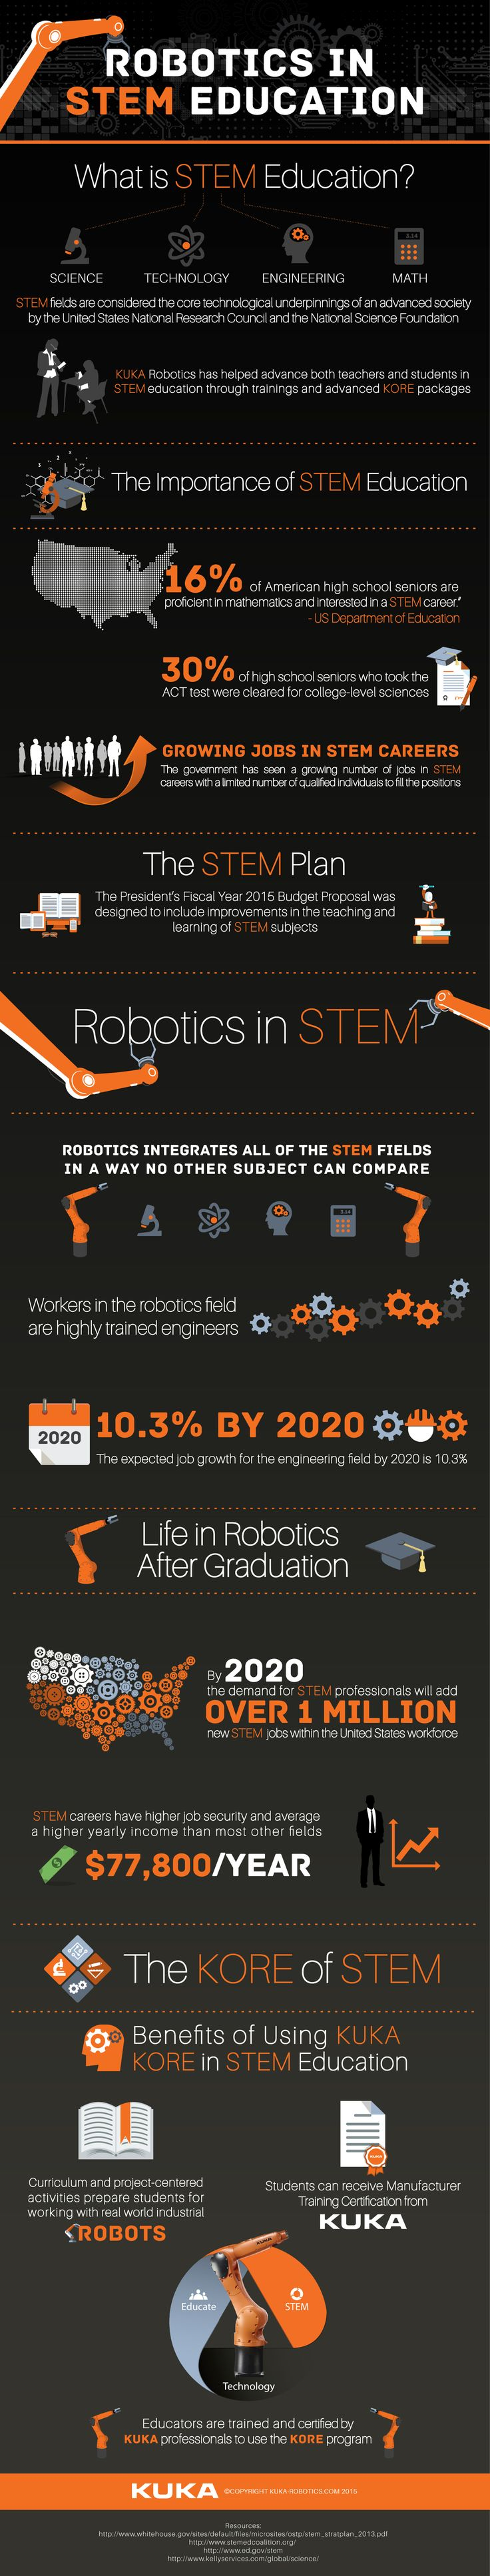 The growth of robotics in STEM education INFOGRAPHIC #Educational #Infographic